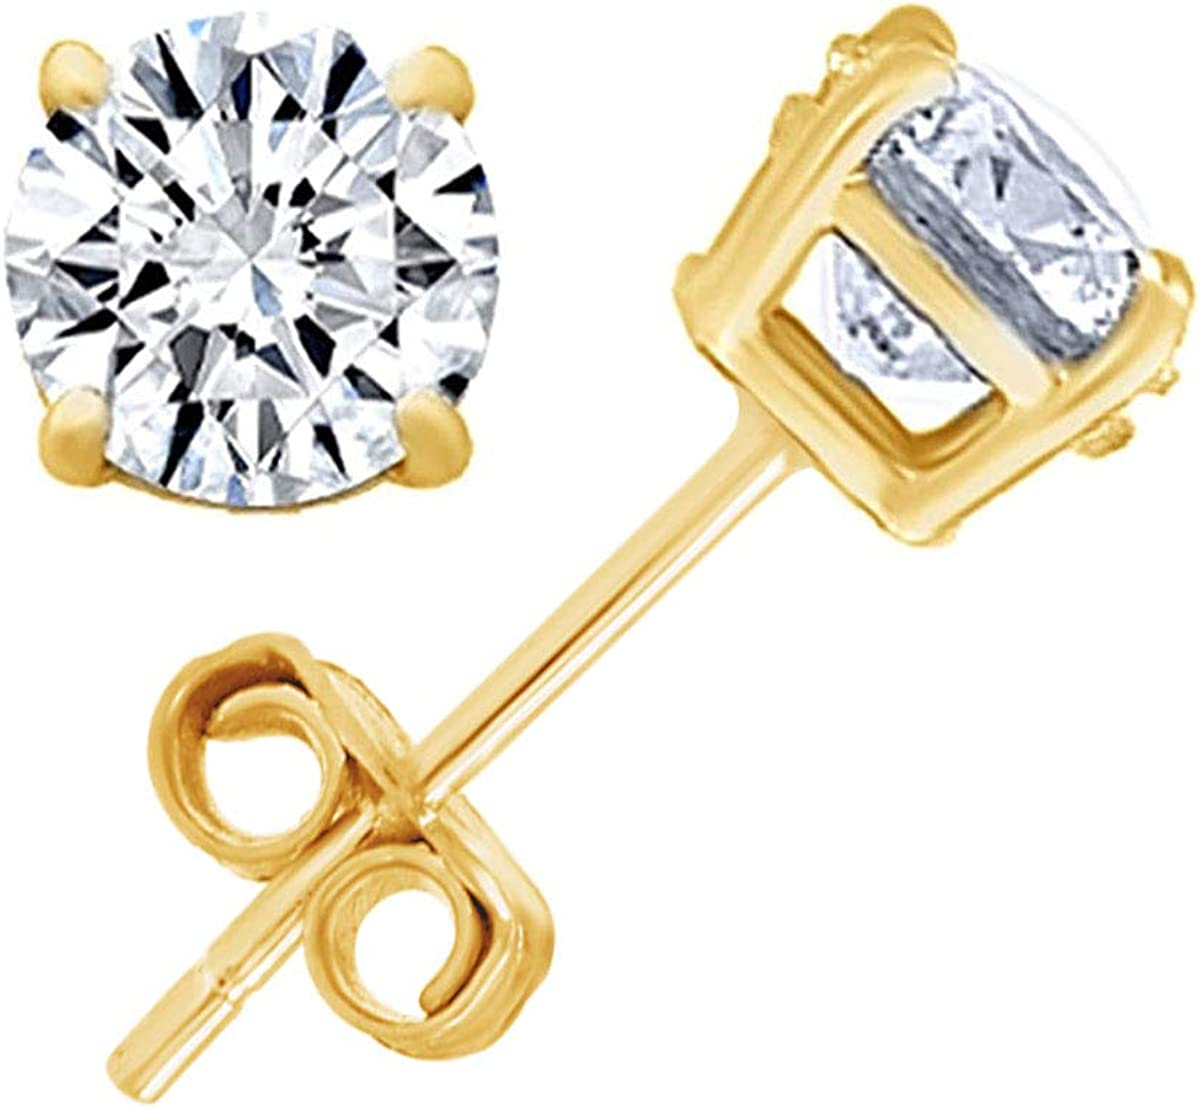 Round Natural Diamond Stud (IGI Certified 0.70 ct & up) Plus Quality Friction Back Earrings in 14k Solid Gold, 0.04 Ctw - 2.00 Ctw